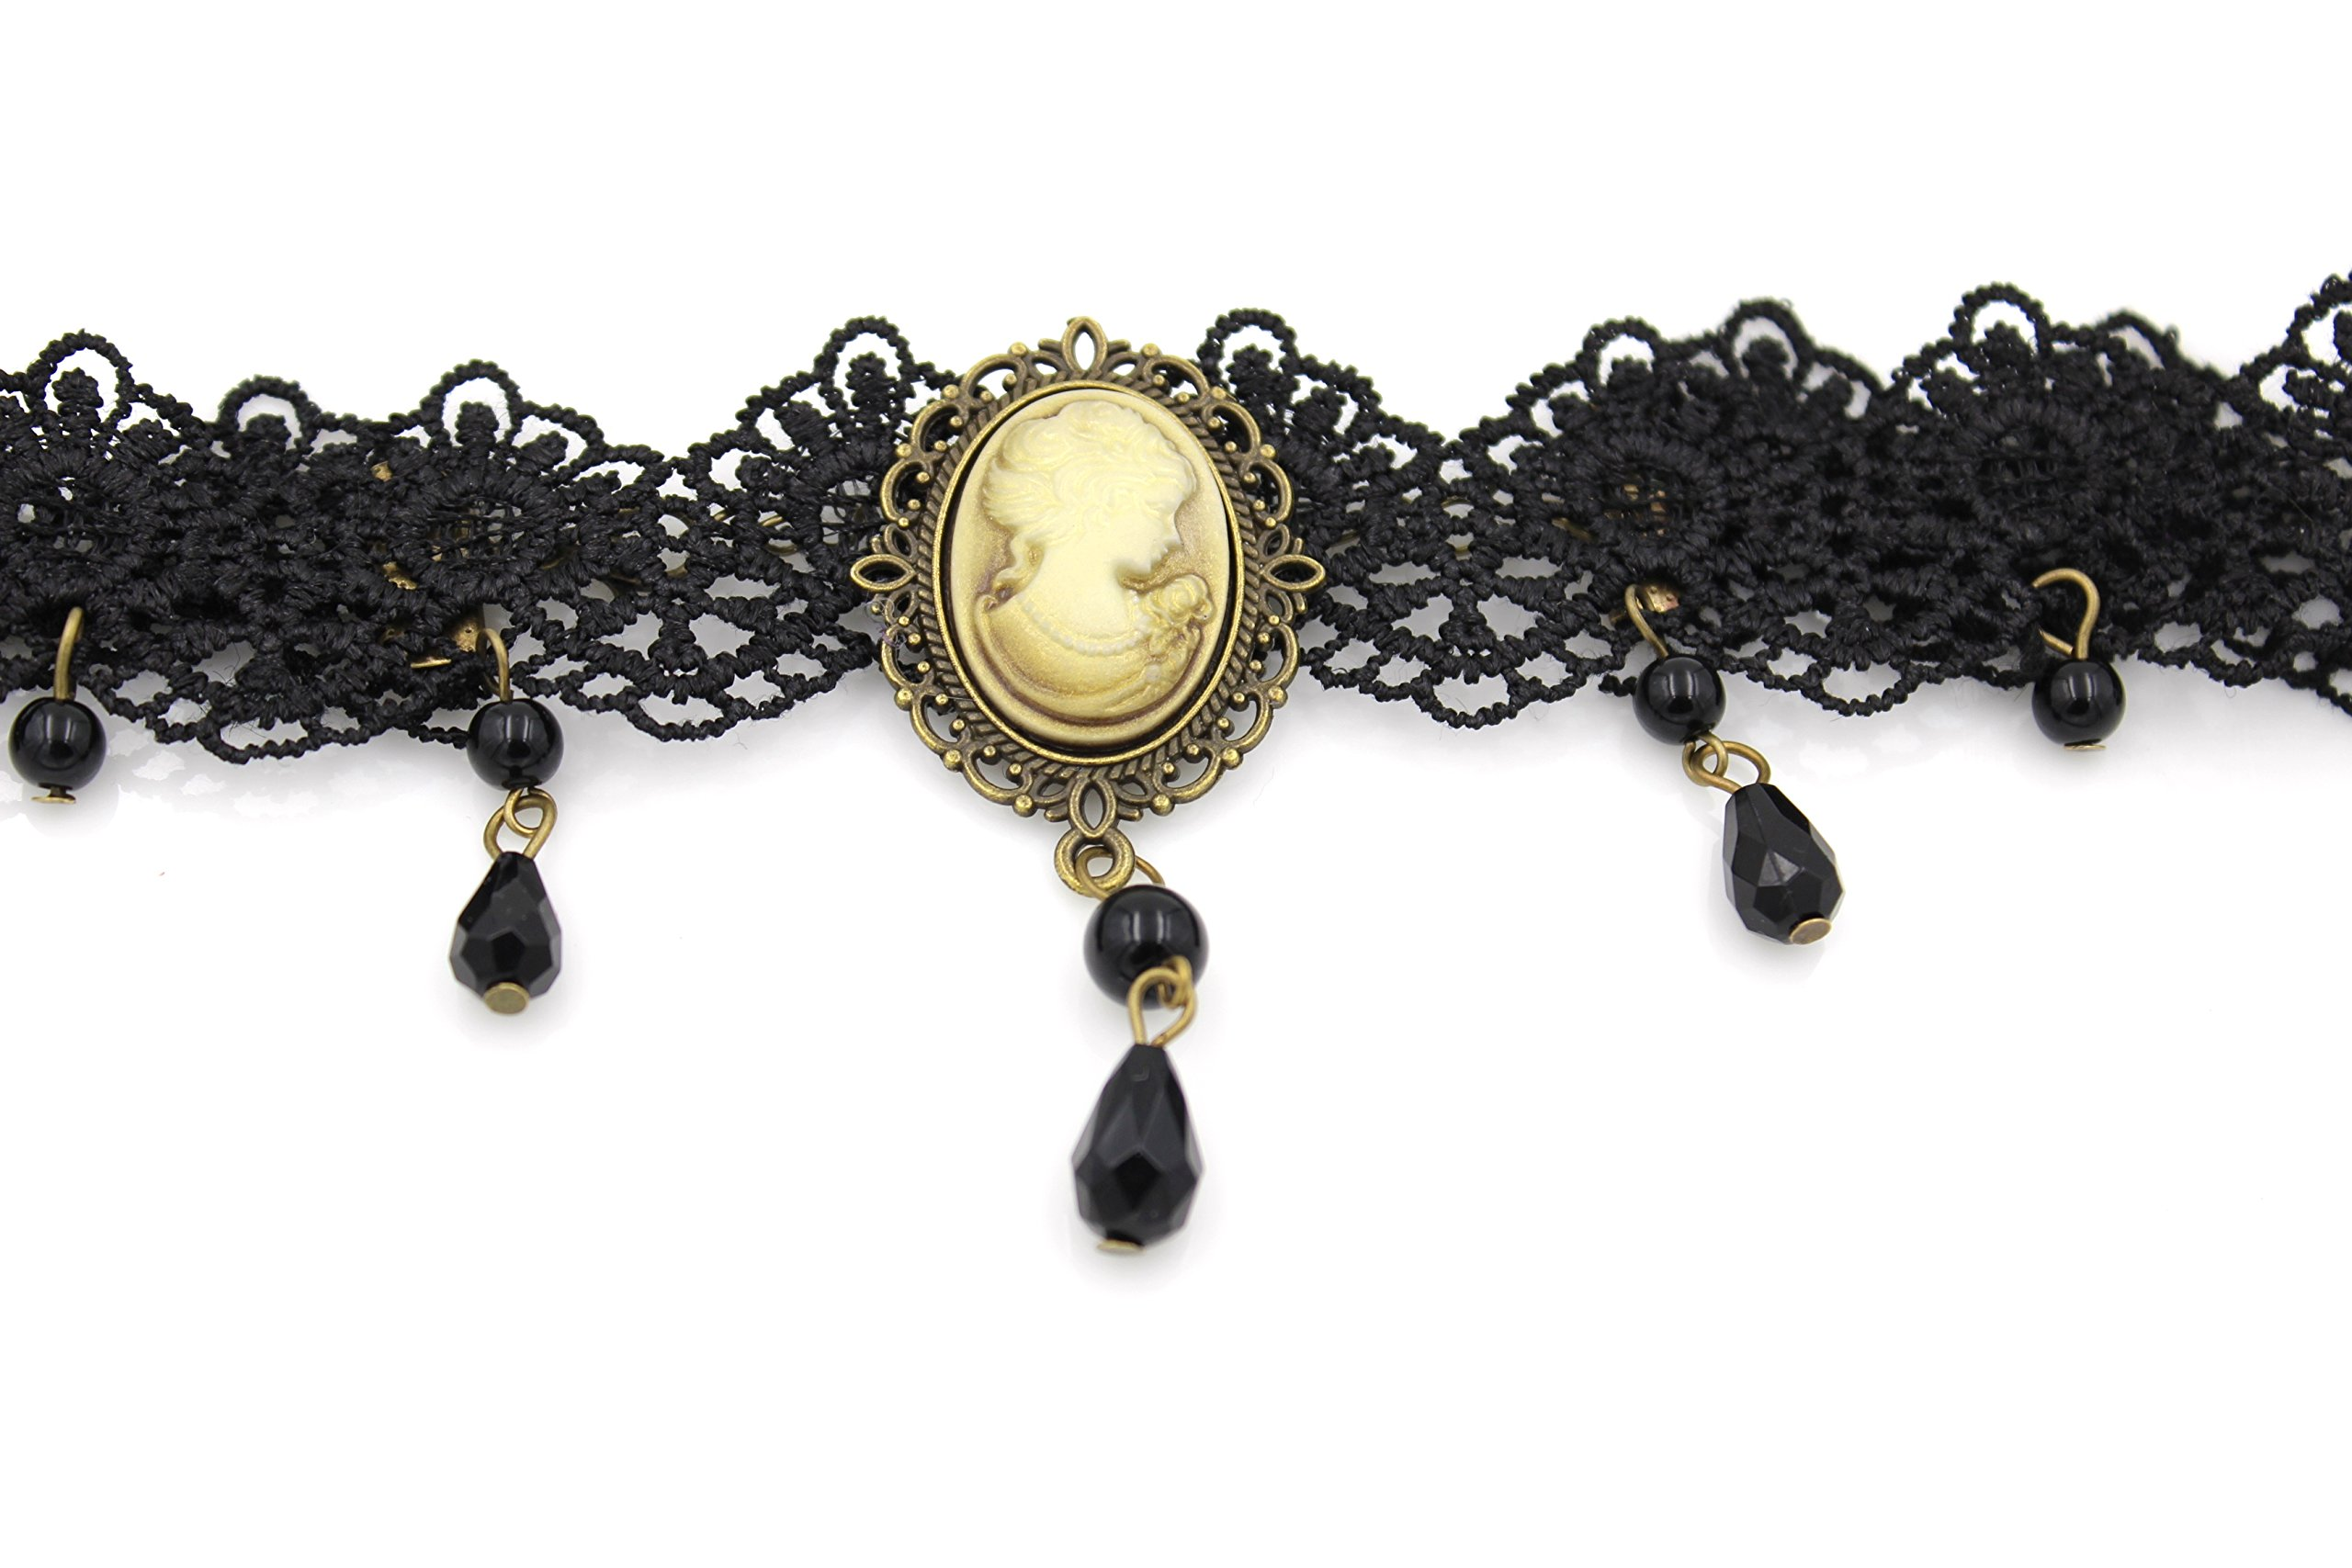 Glazed Black Cherry Steampunk Victorian Lady Cameo Choker Necklace - Gothic Goth - Bead Drop Vintage - Steam Punk - s30 5